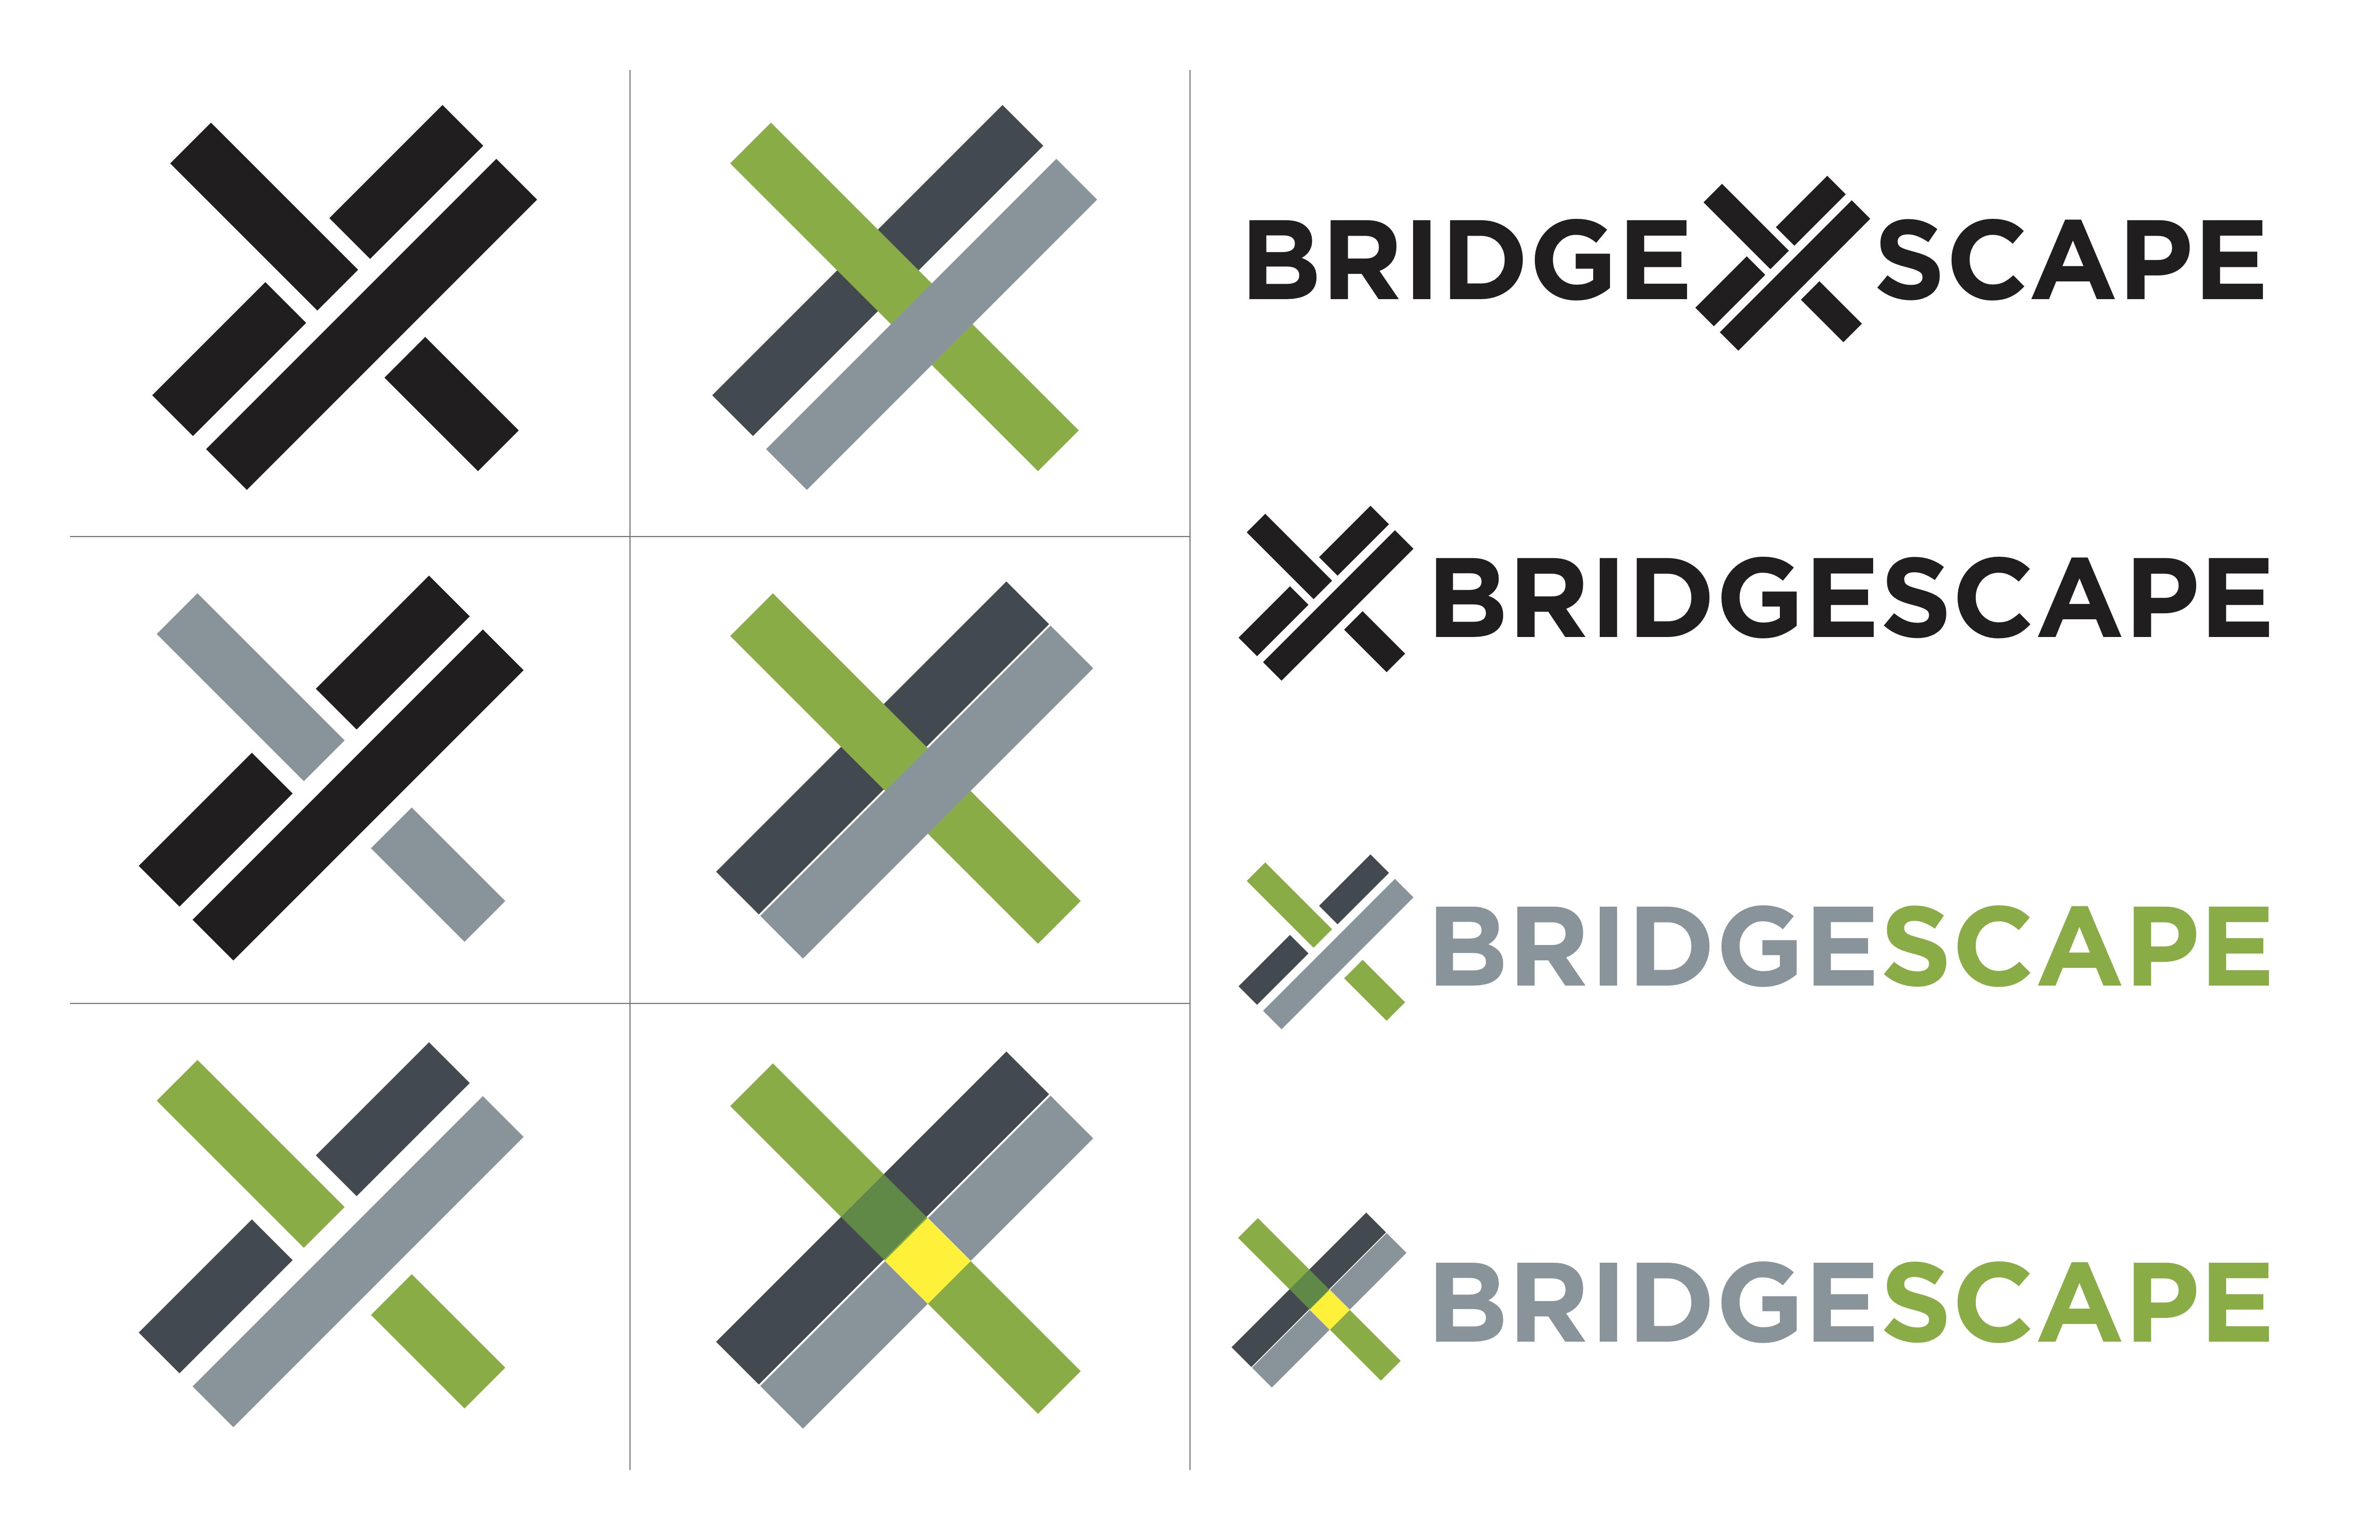 bridgescape logo designs